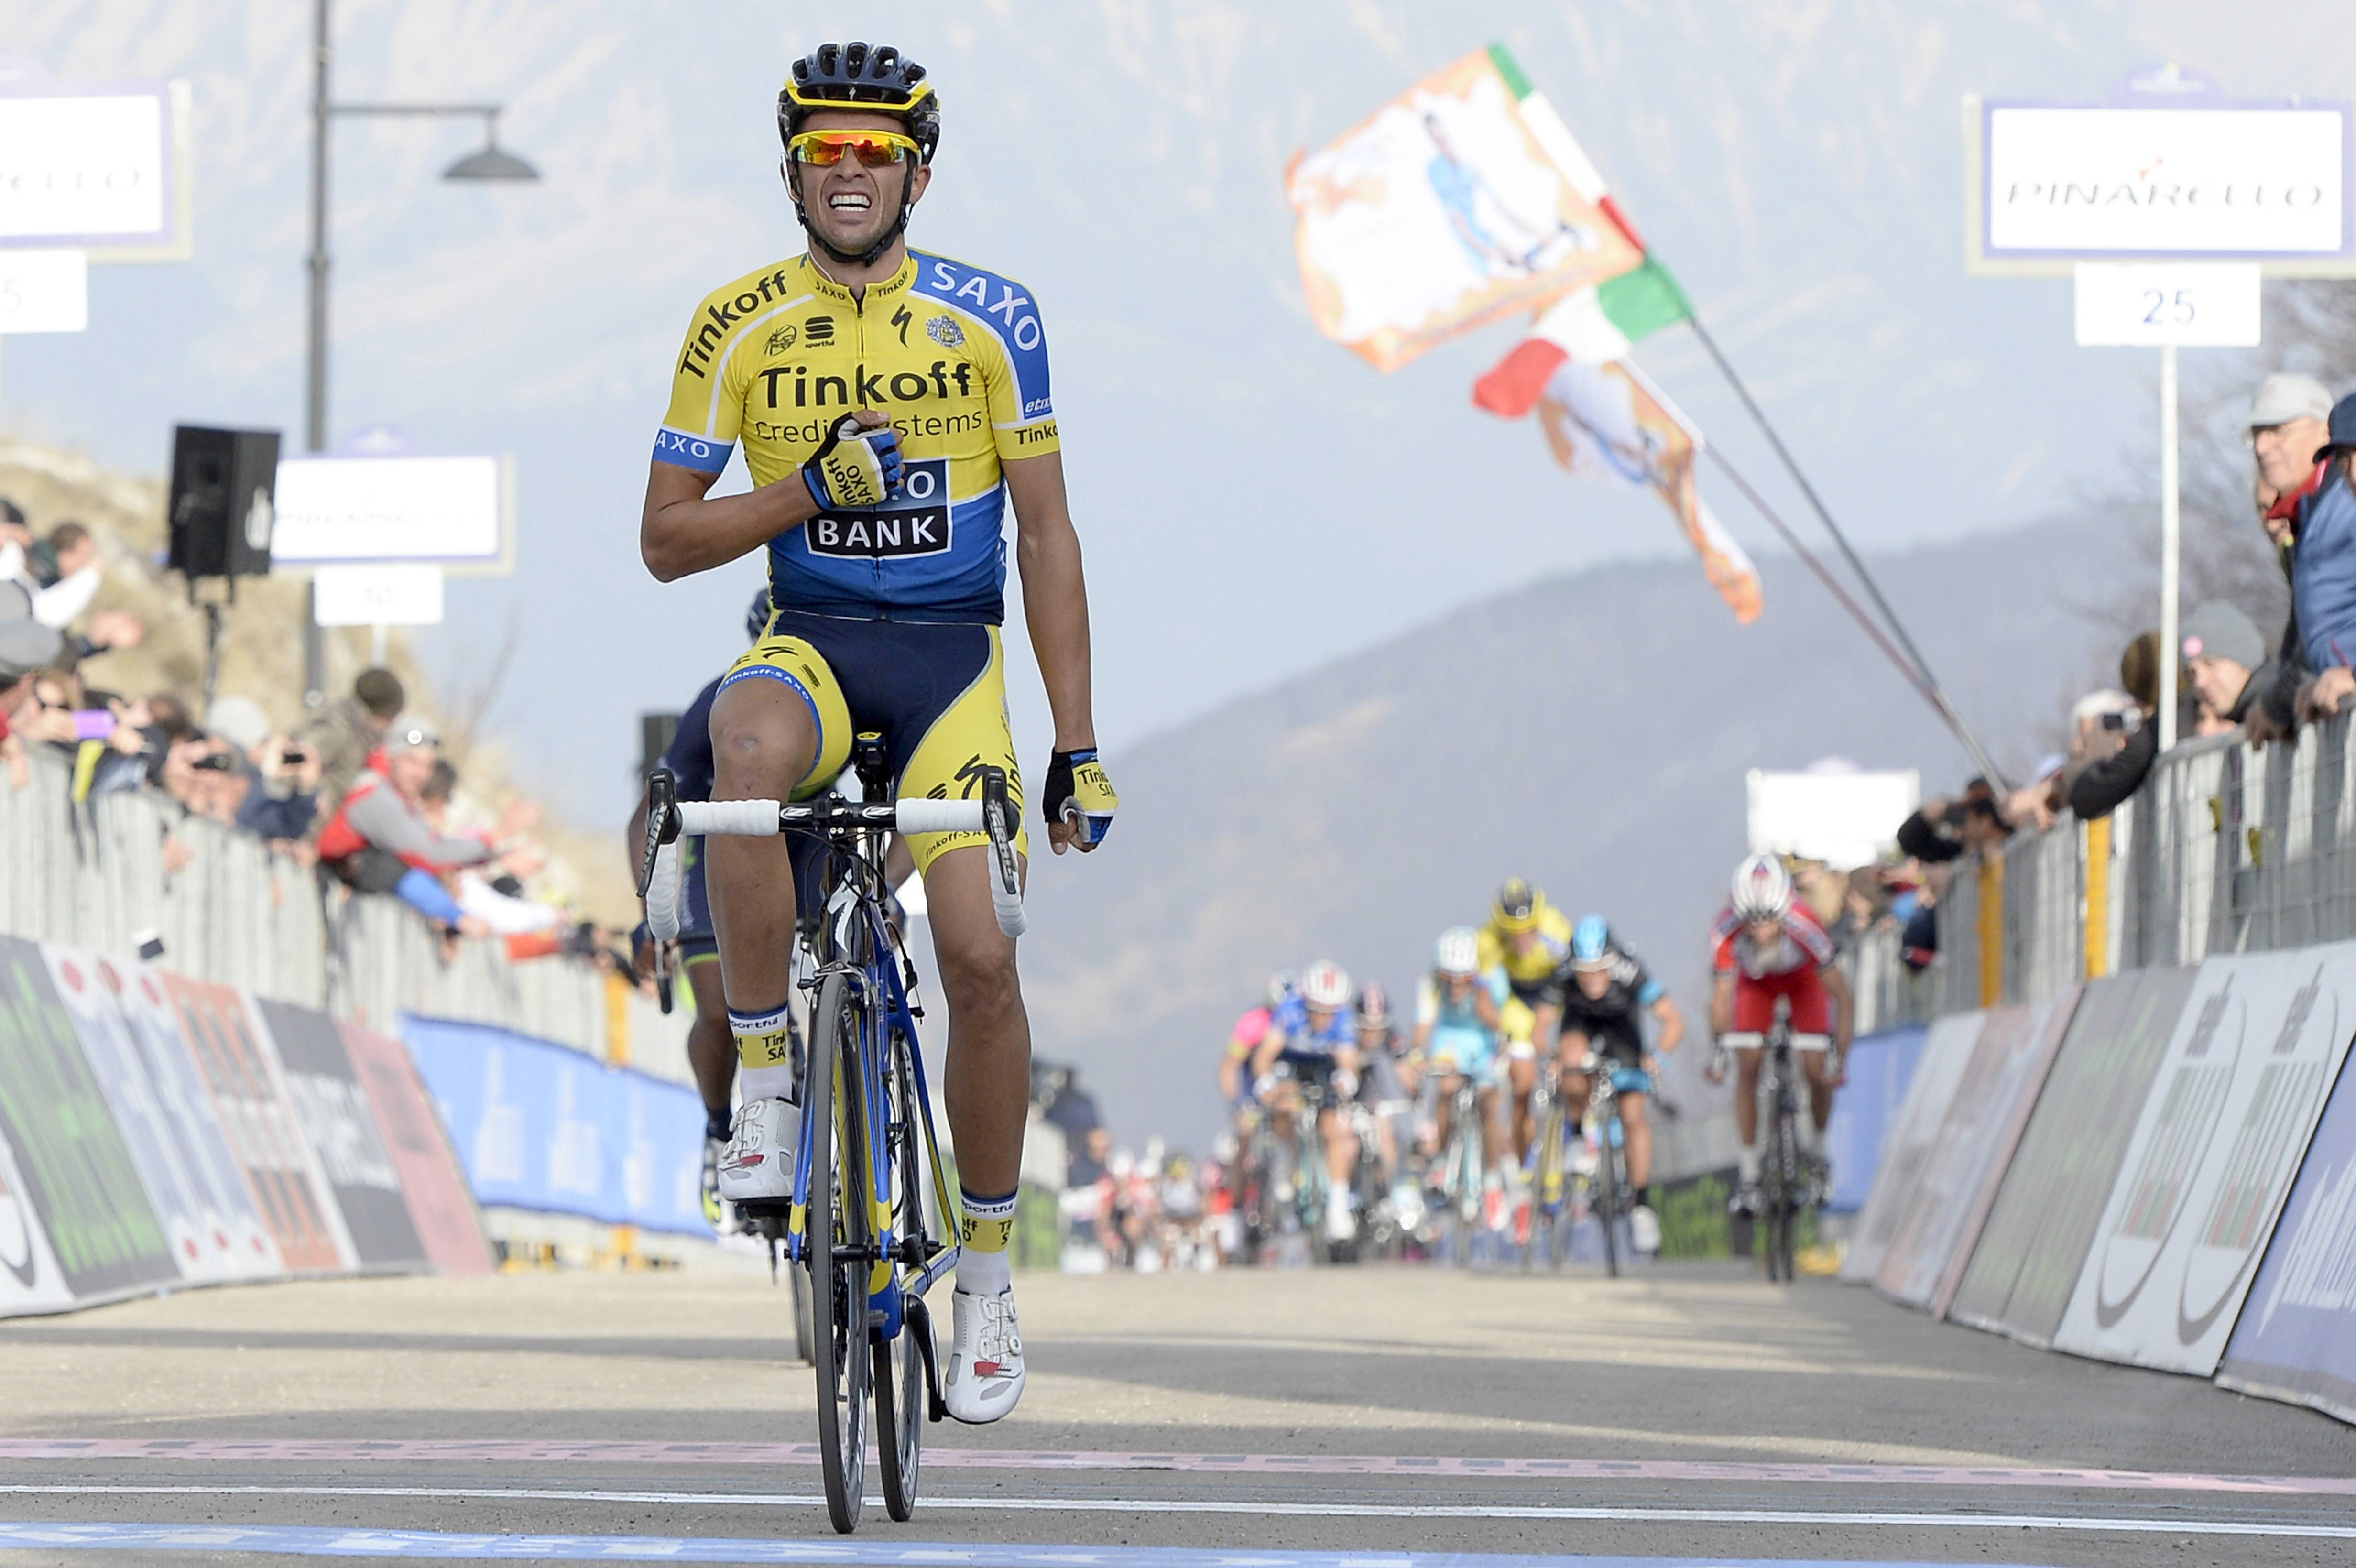 Spain's Alberto Contador celebrates as he wins the fourth stage of the Tirreno-Adriatico cycling race Saturday in Cittareale Selvarotonda, Italy